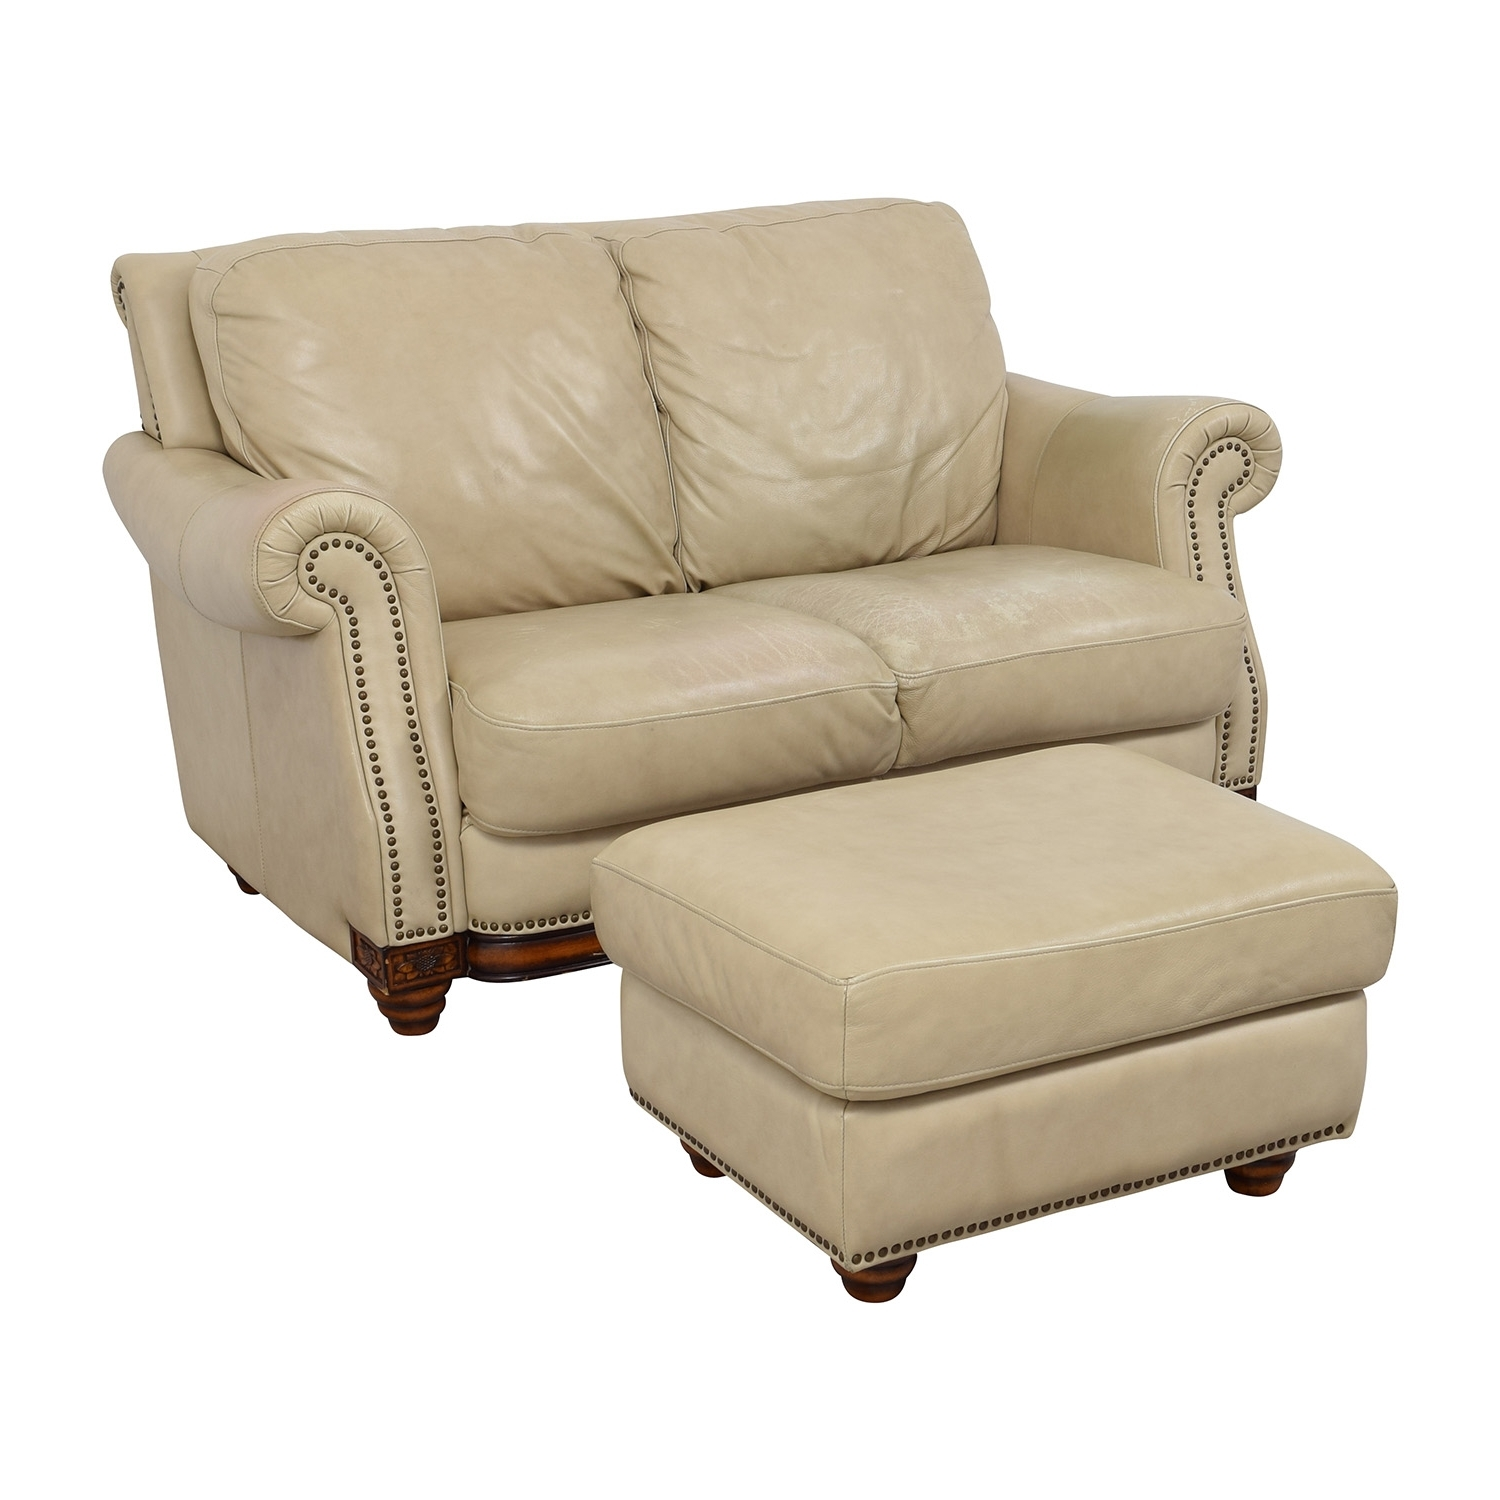 [%74% Off – Raymour & Flanigan Raymour & Flanigan Studded Tan With Regard To 2018 Loveseats With Ottoman|Loveseats With Ottoman Pertaining To Most Recently Released 74% Off – Raymour & Flanigan Raymour & Flanigan Studded Tan|Fashionable Loveseats With Ottoman In 74% Off – Raymour & Flanigan Raymour & Flanigan Studded Tan|Fashionable 74% Off – Raymour & Flanigan Raymour & Flanigan Studded Tan For Loveseats With Ottoman%] (View 5 of 15)